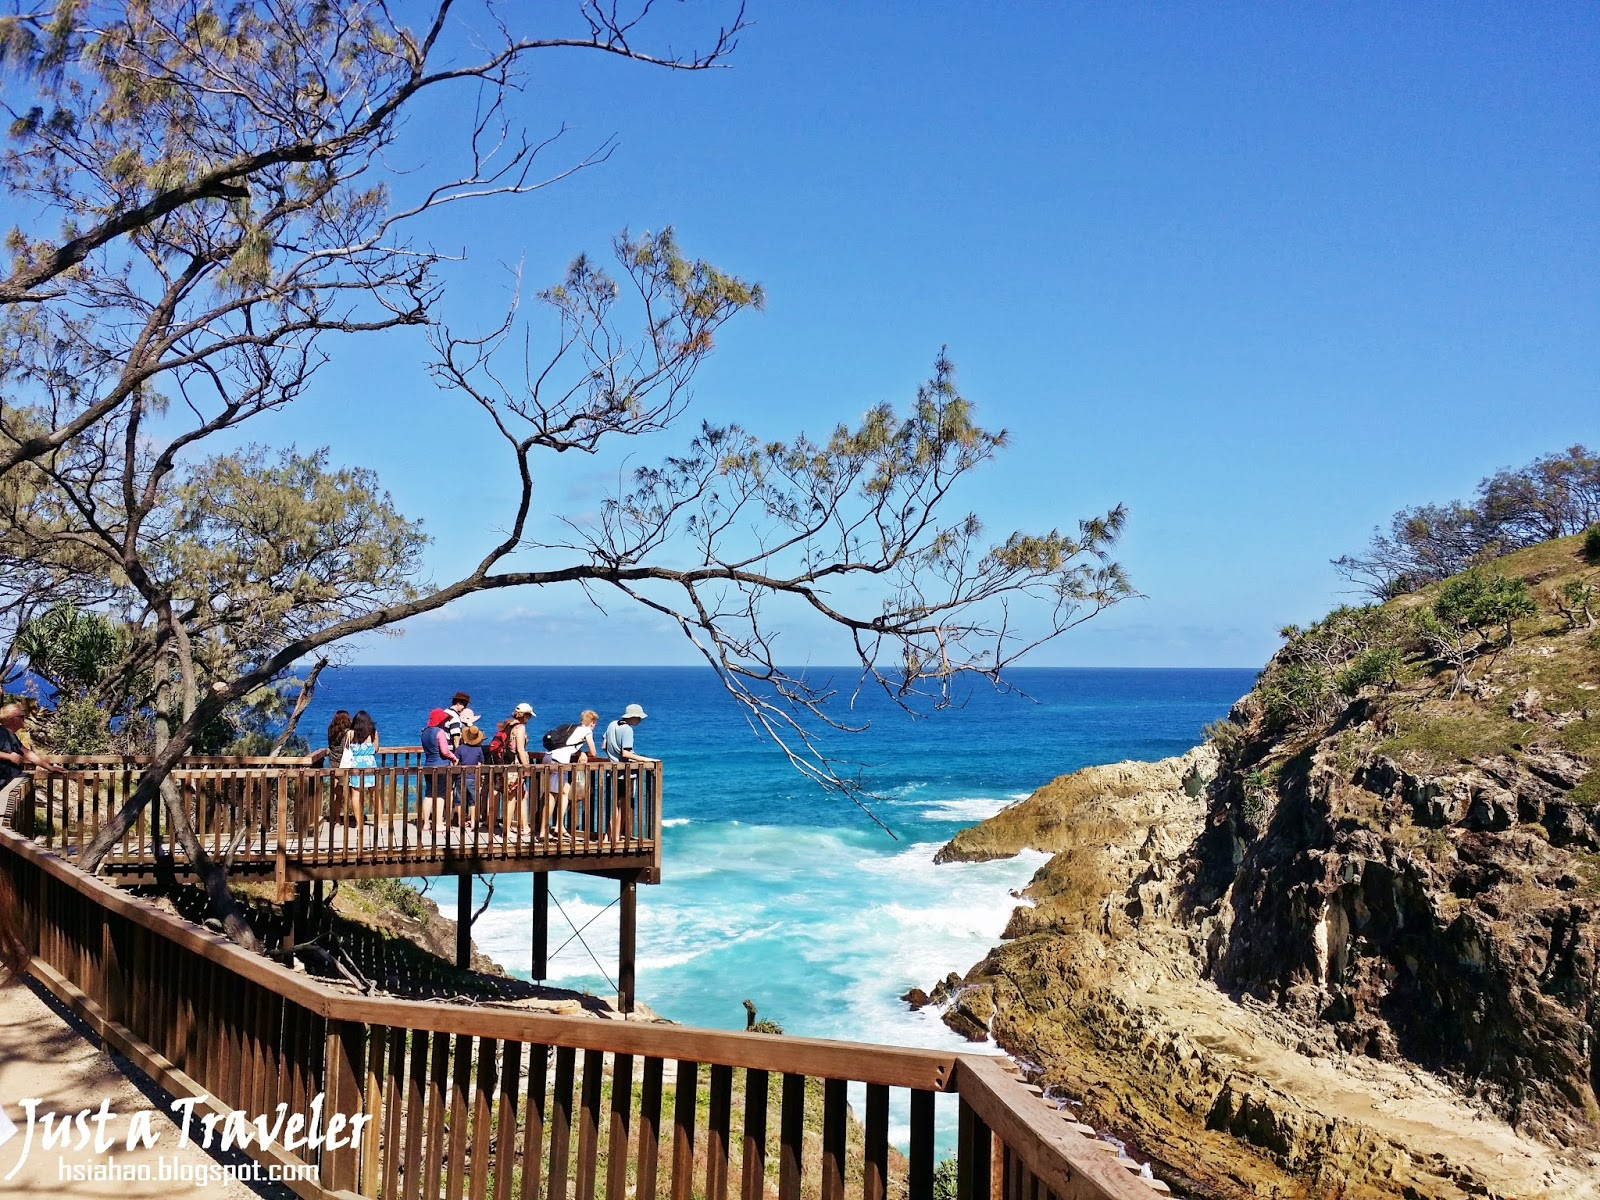 布里斯本-景點-推薦-北斯德布魯克島-旅遊-自由行-Brisbane-Attraction-North-Stradbroke-Island--Gorge-Point-LookoutTourist-destination